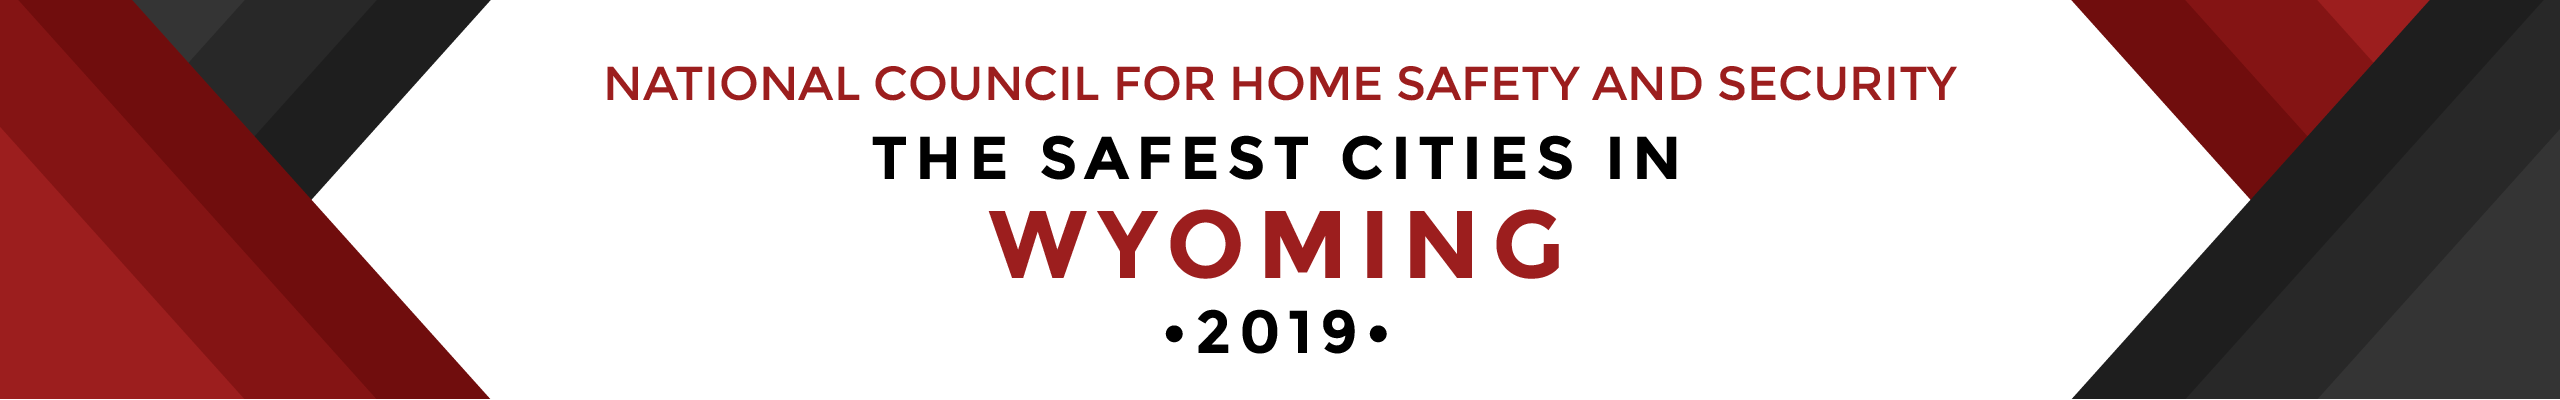 Safest Cities Wyoming - header